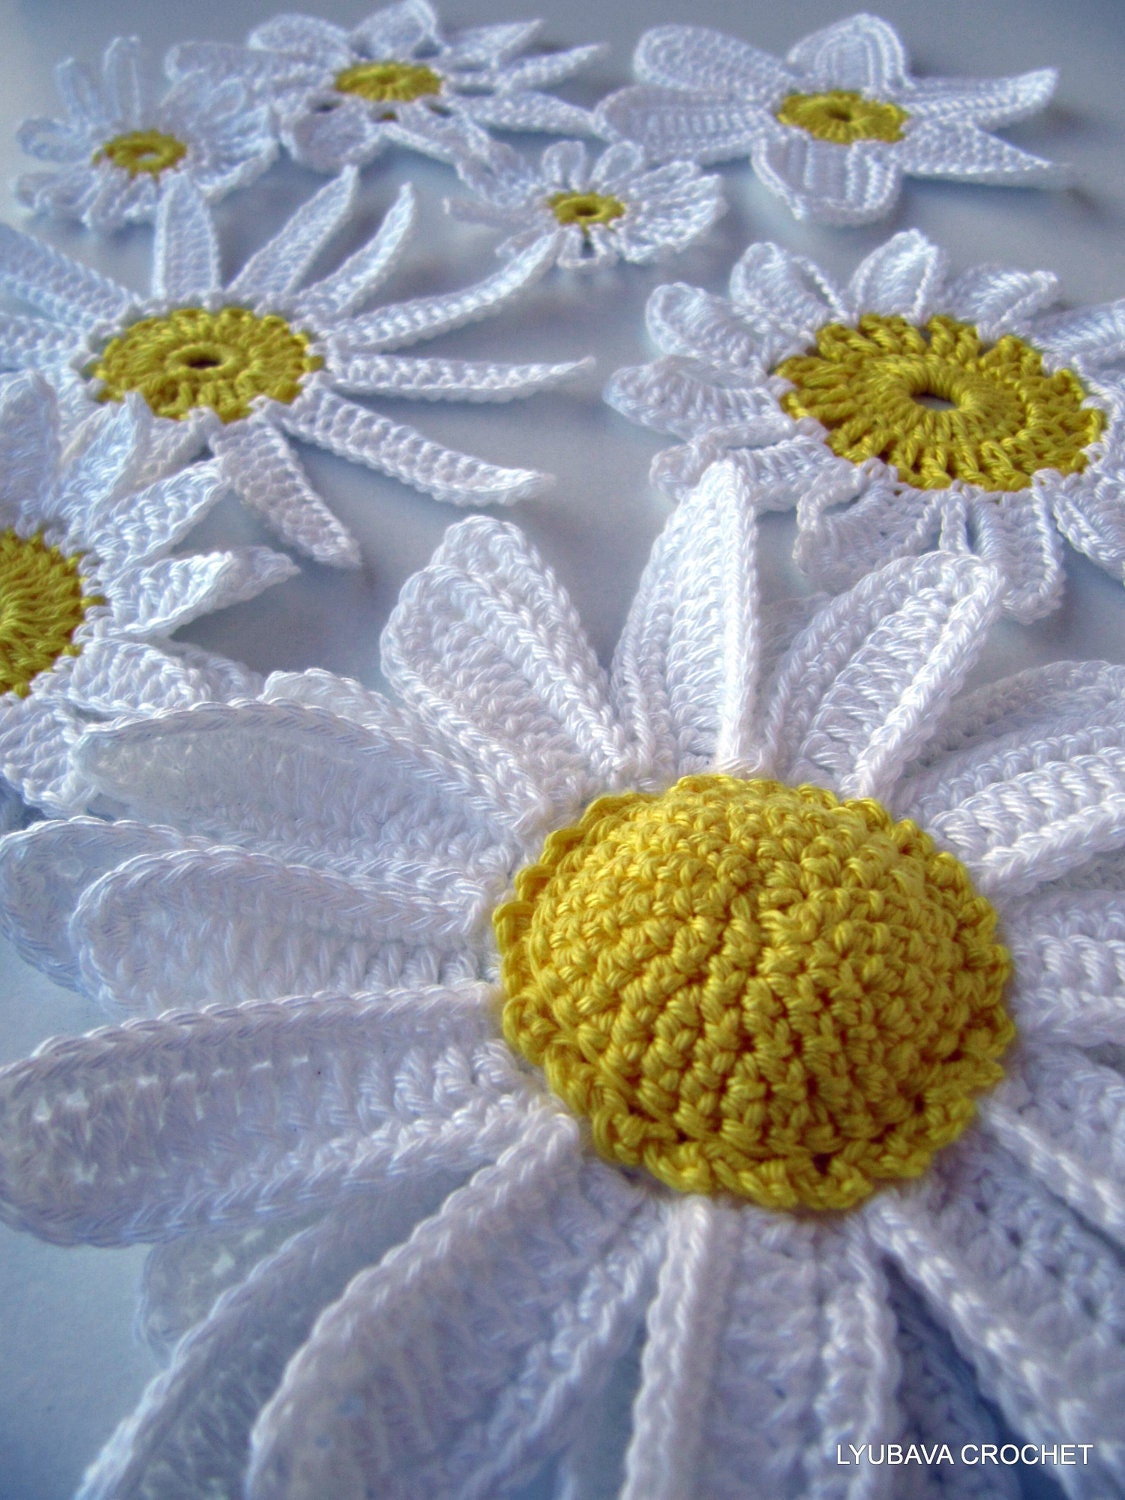 Crochet Flowers PATTERN Daisy Flowers Pattern DIY Crochet